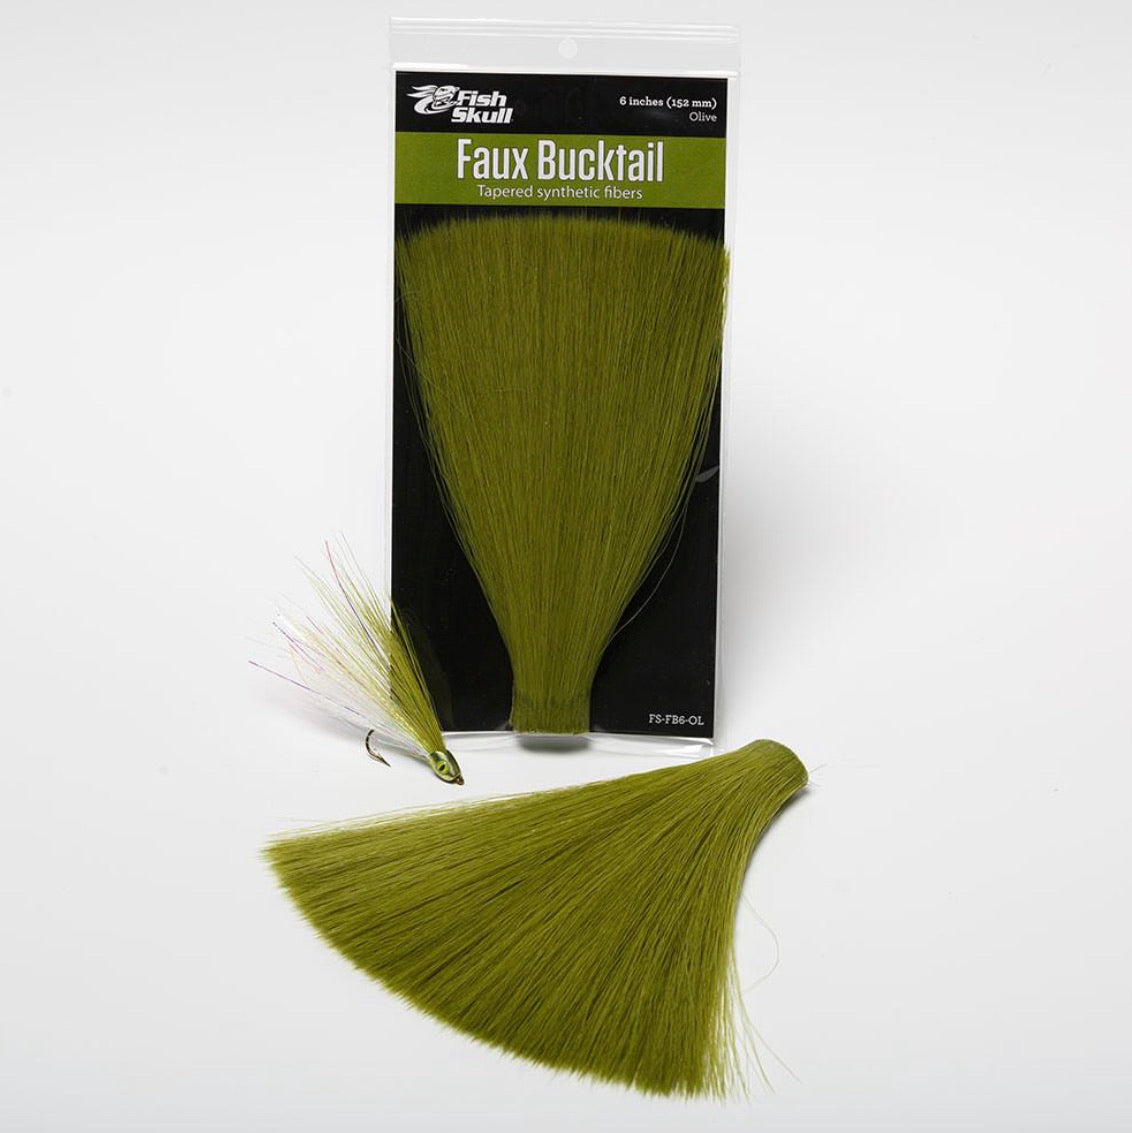 Faux Bucktail